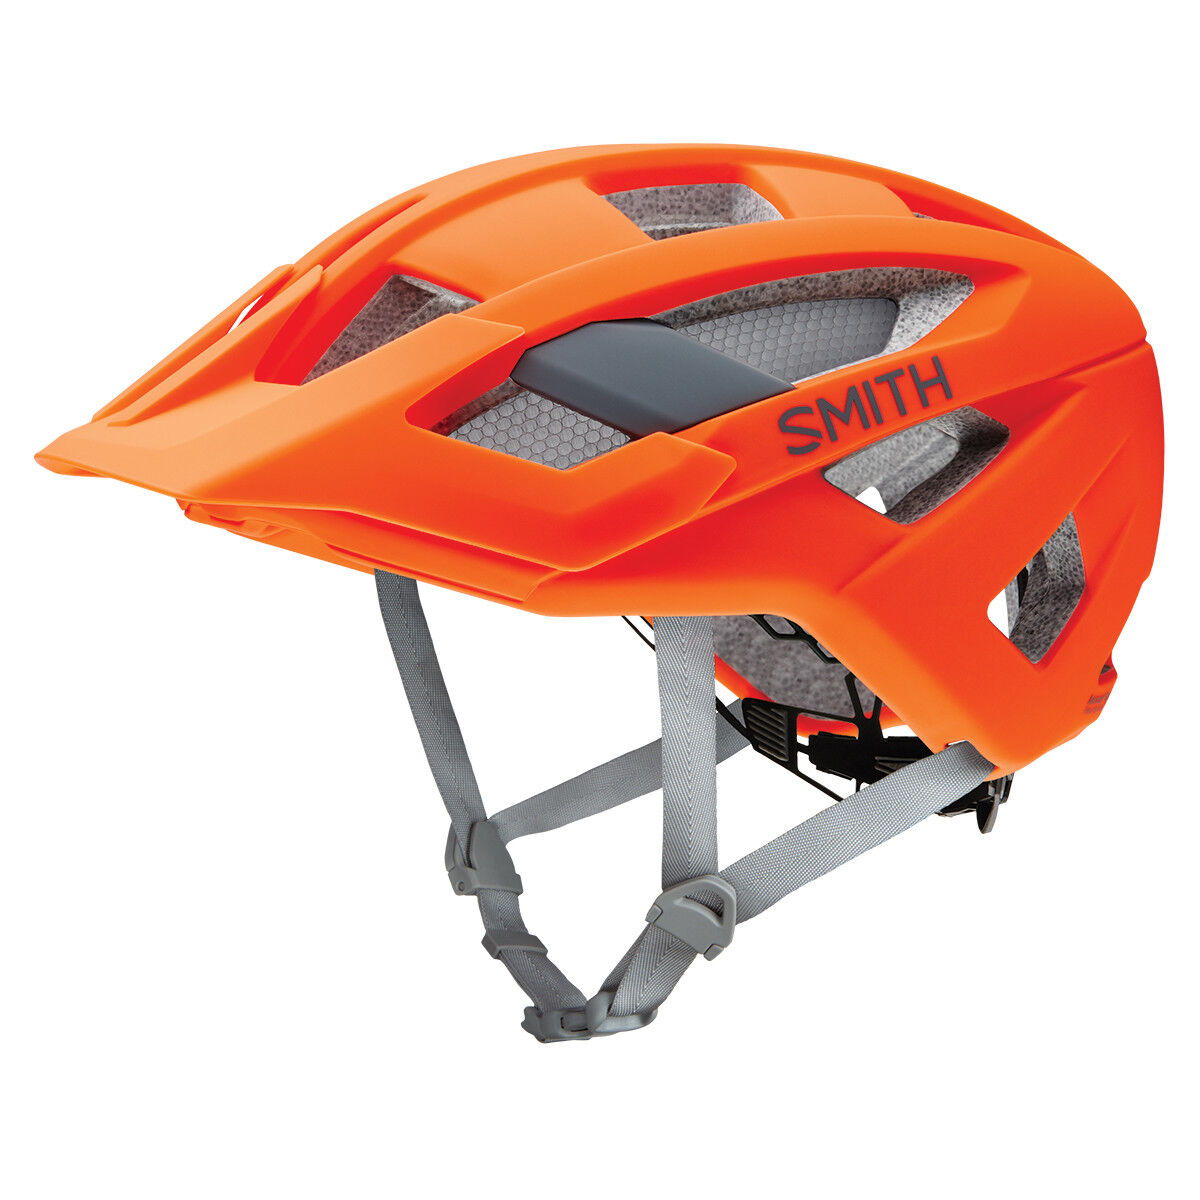 Smith Rover Mips Vtt Cycle Vélo Casque Mat Orange Fluo Kolroyd S M L